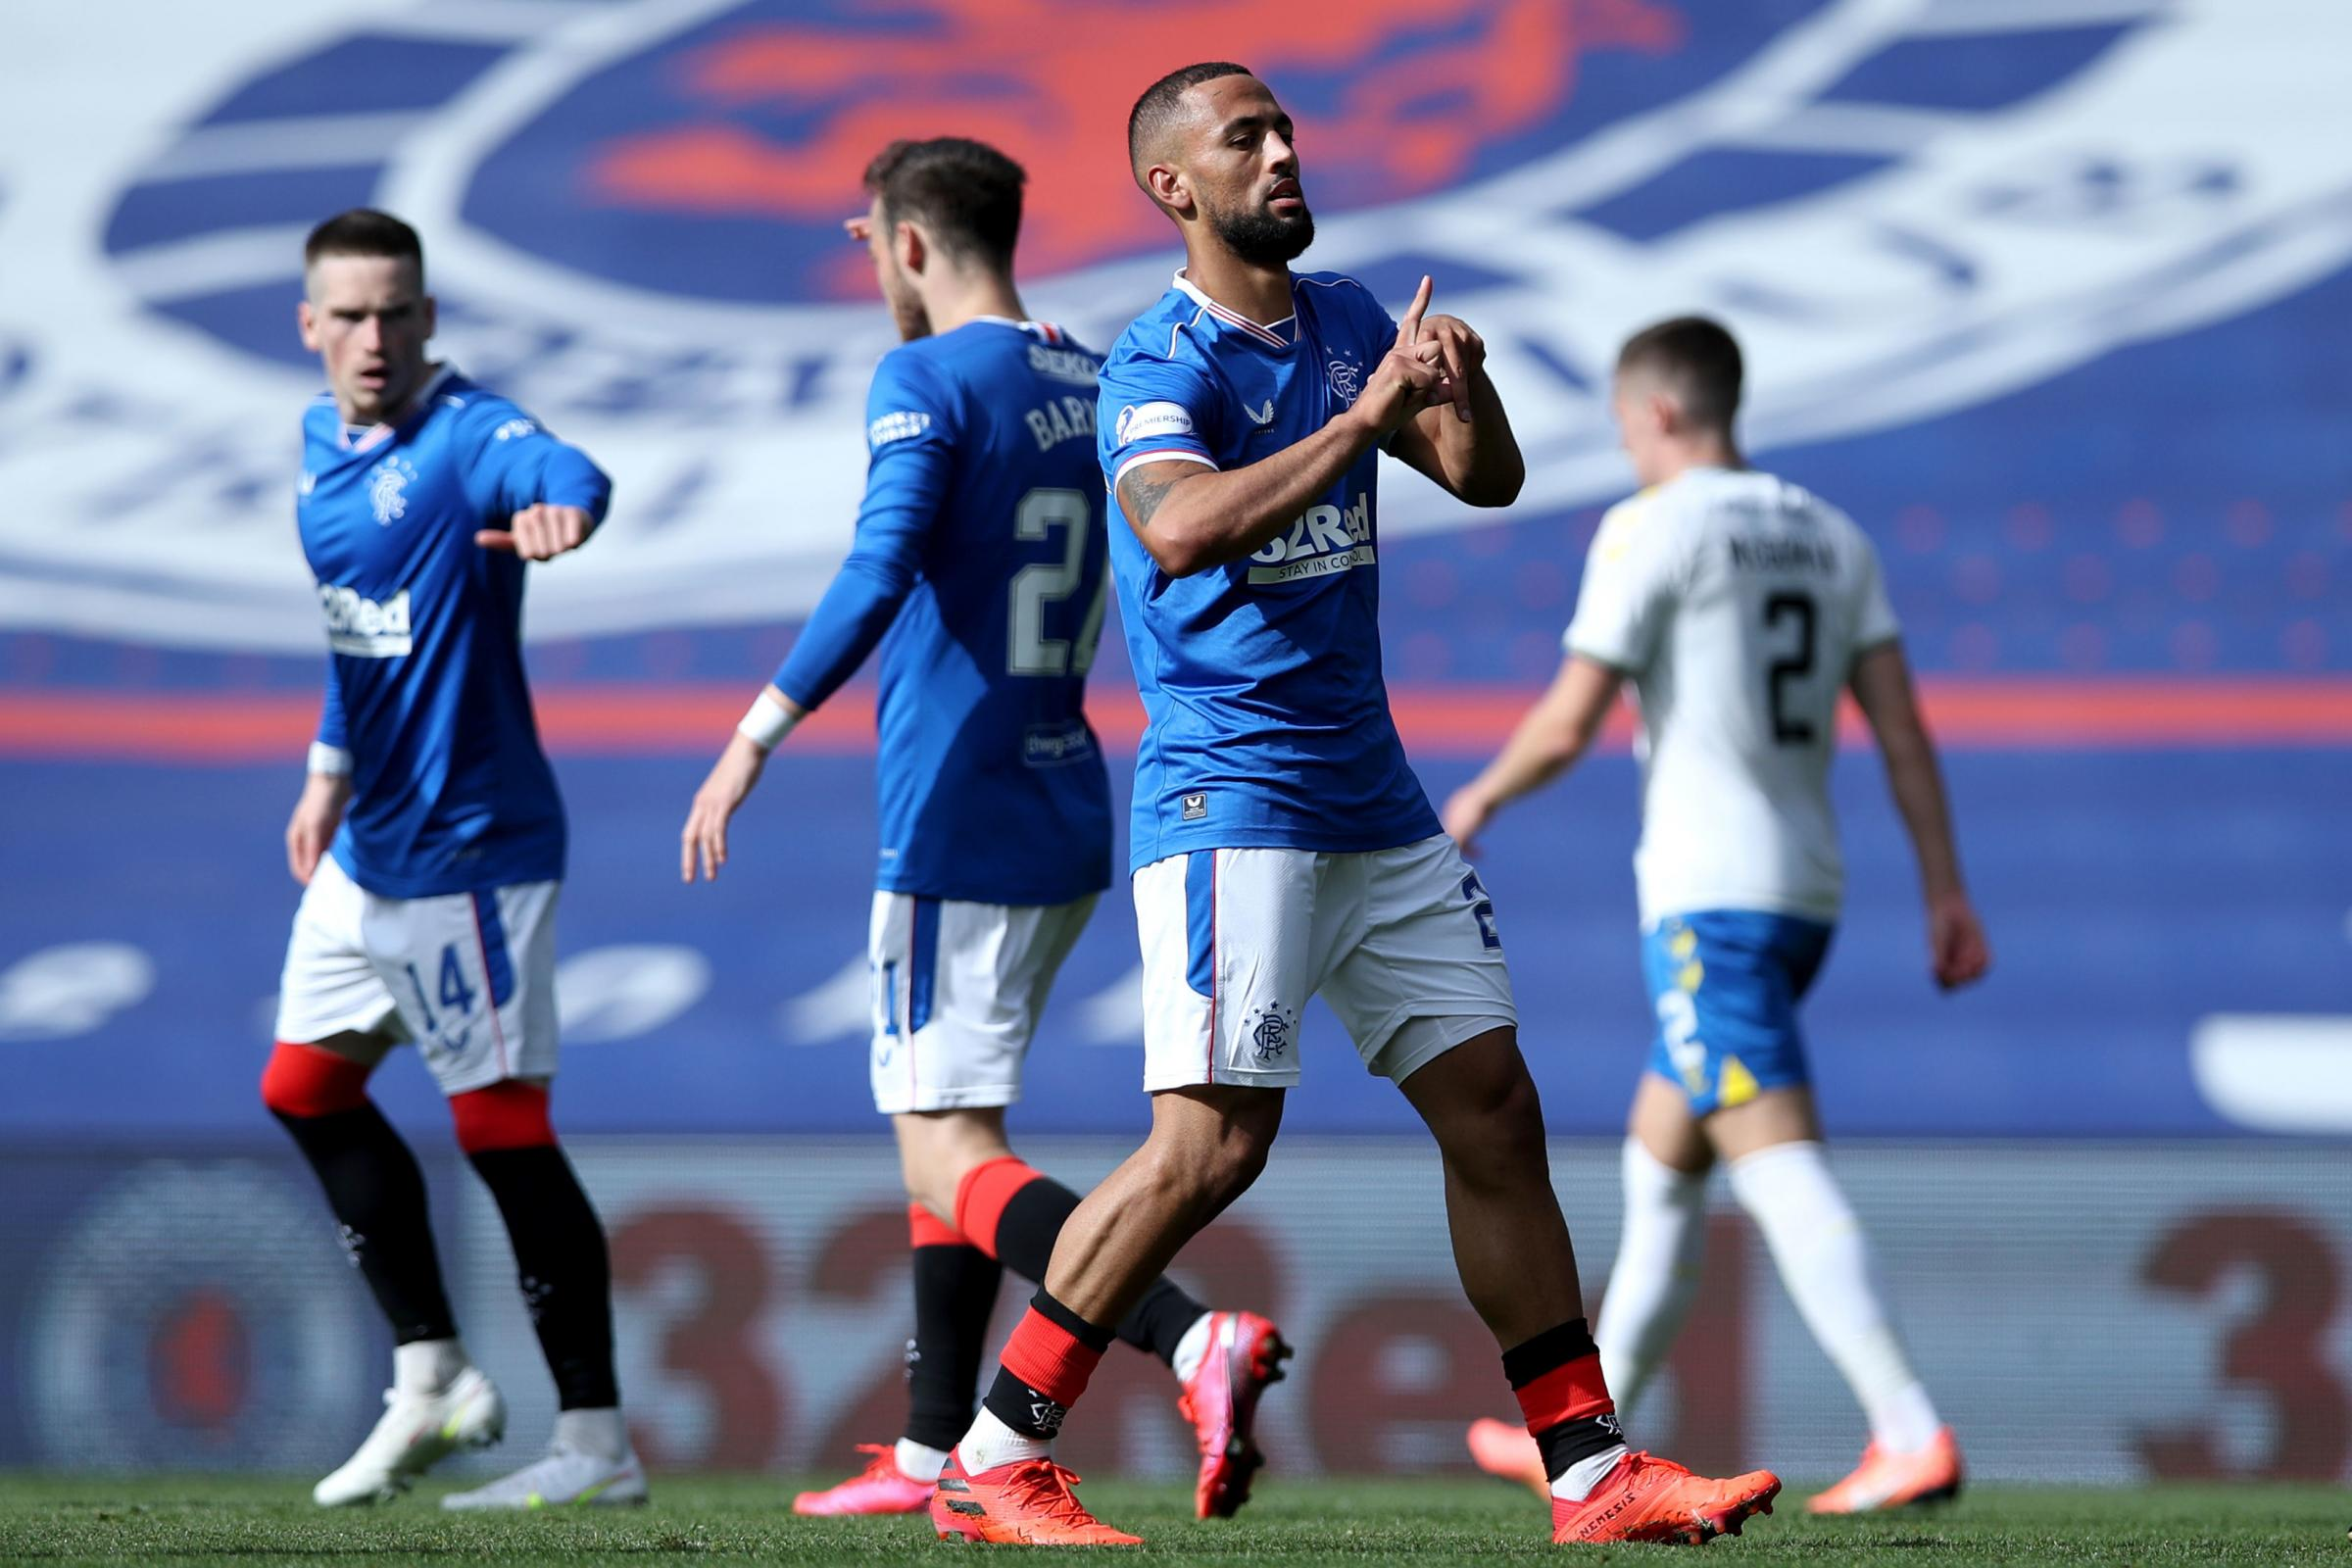 Kemar Roofe settles into Rangers attack with ease after first Ibrox goal